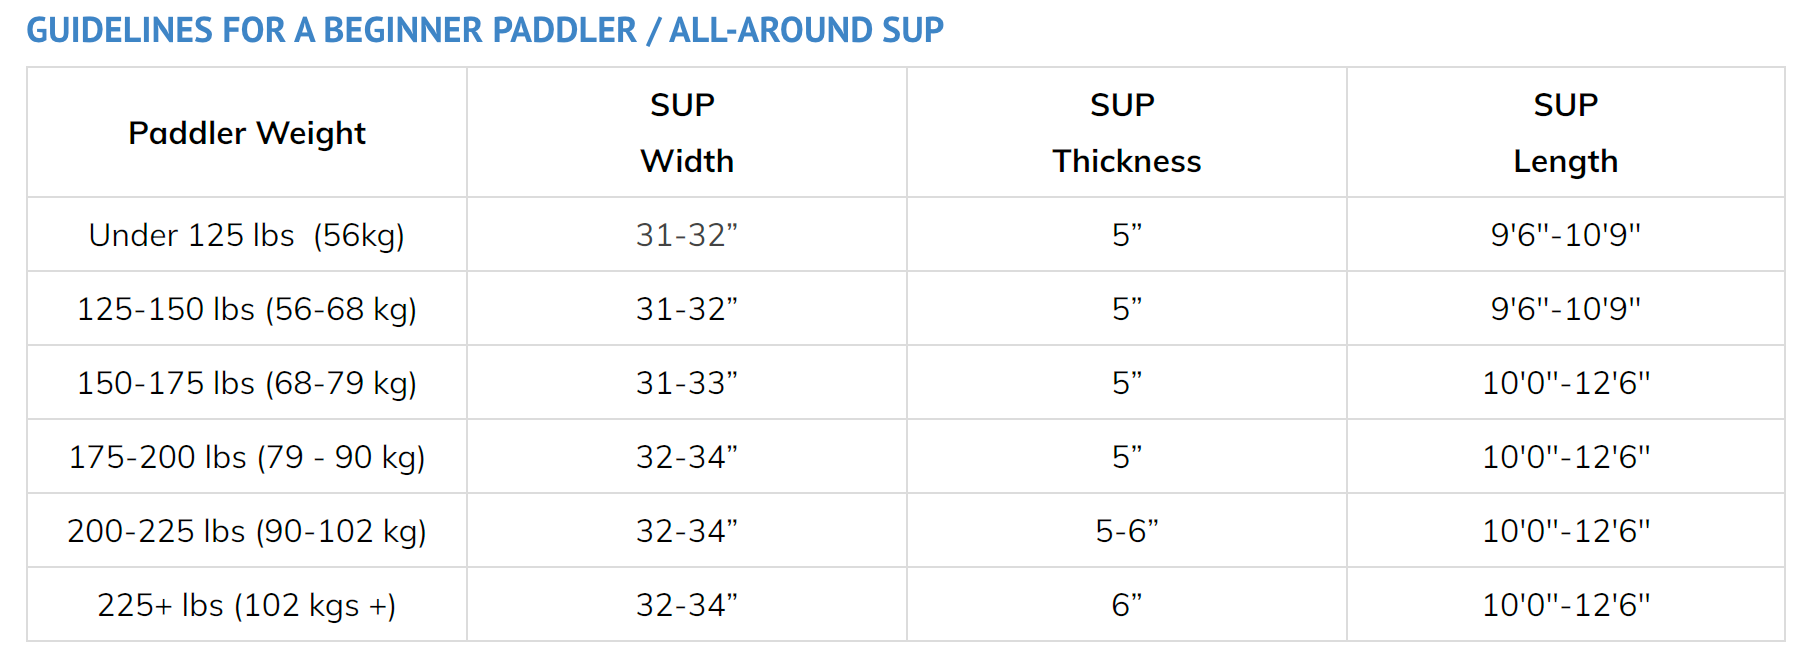 inflatable sup size guide